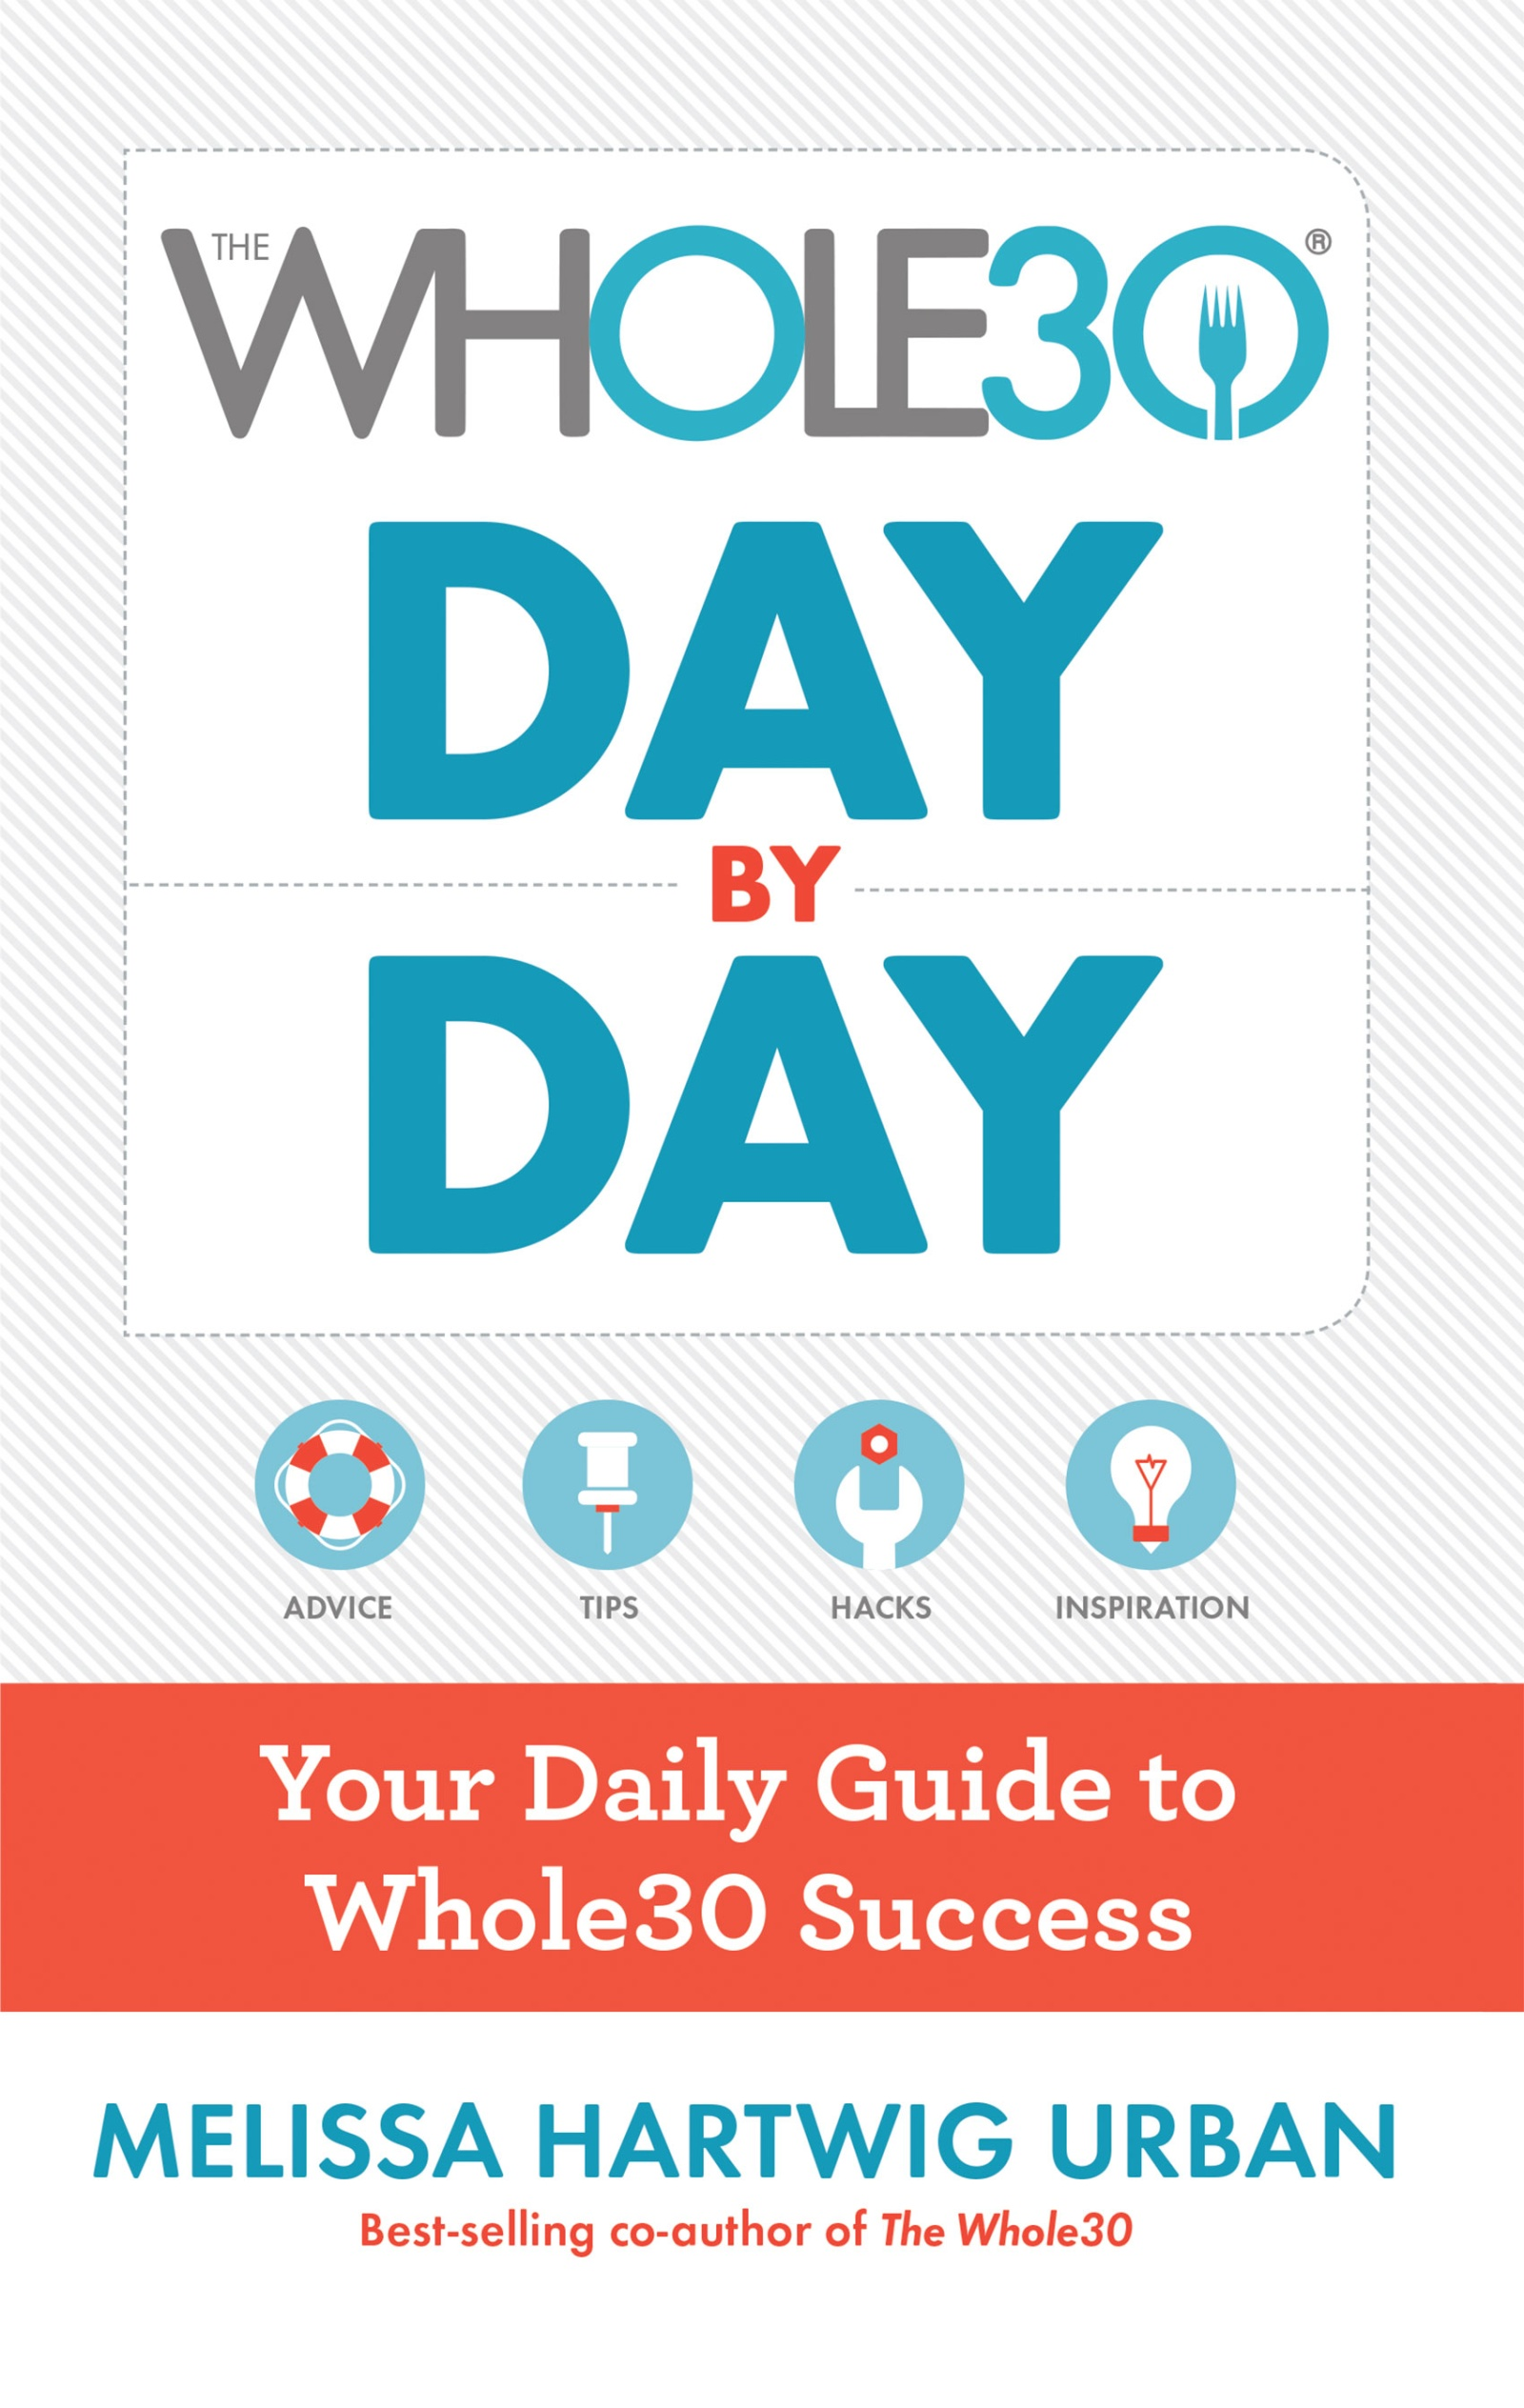 The Whole30 Day by Day Your Daily Guide to Whole30 Success